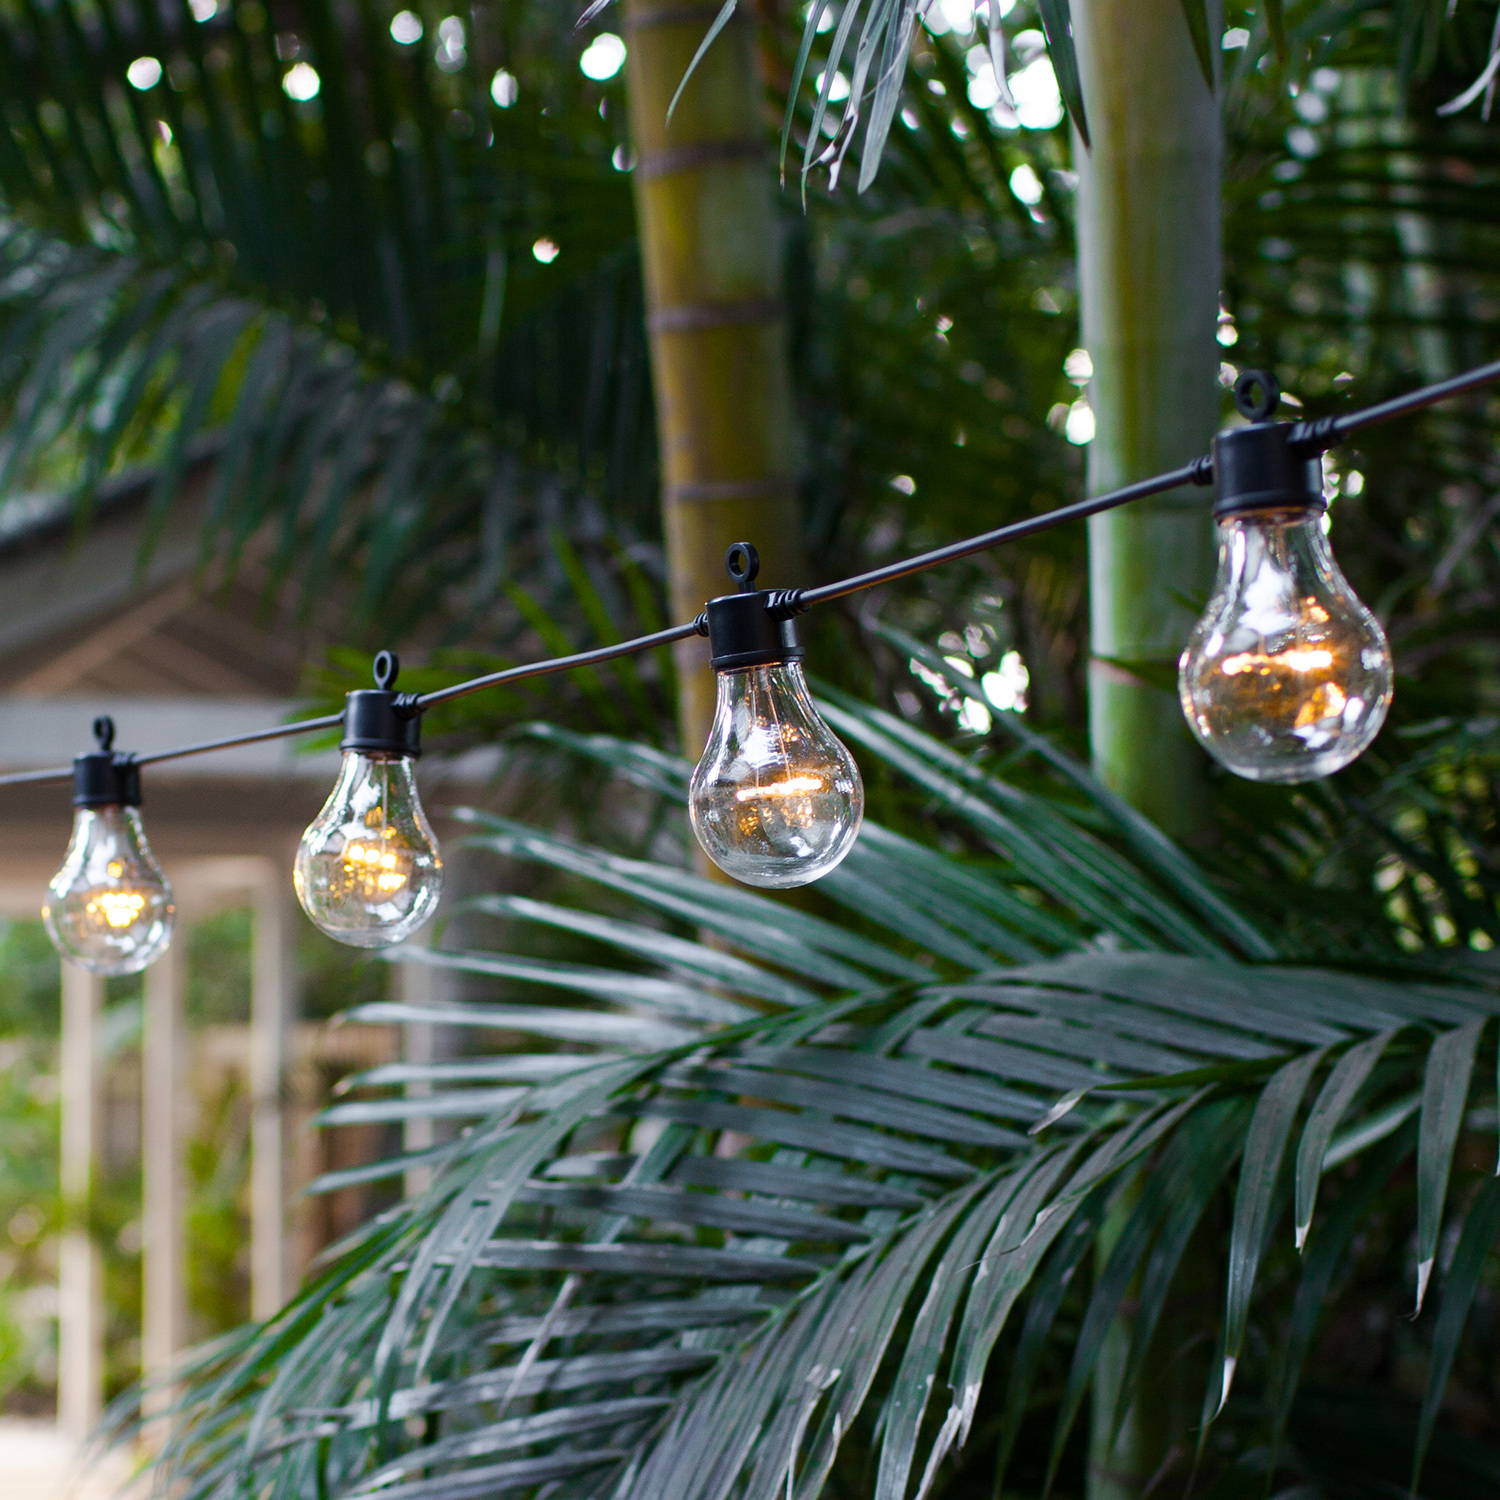 Green palm trees with a string of festoon lights on black cable